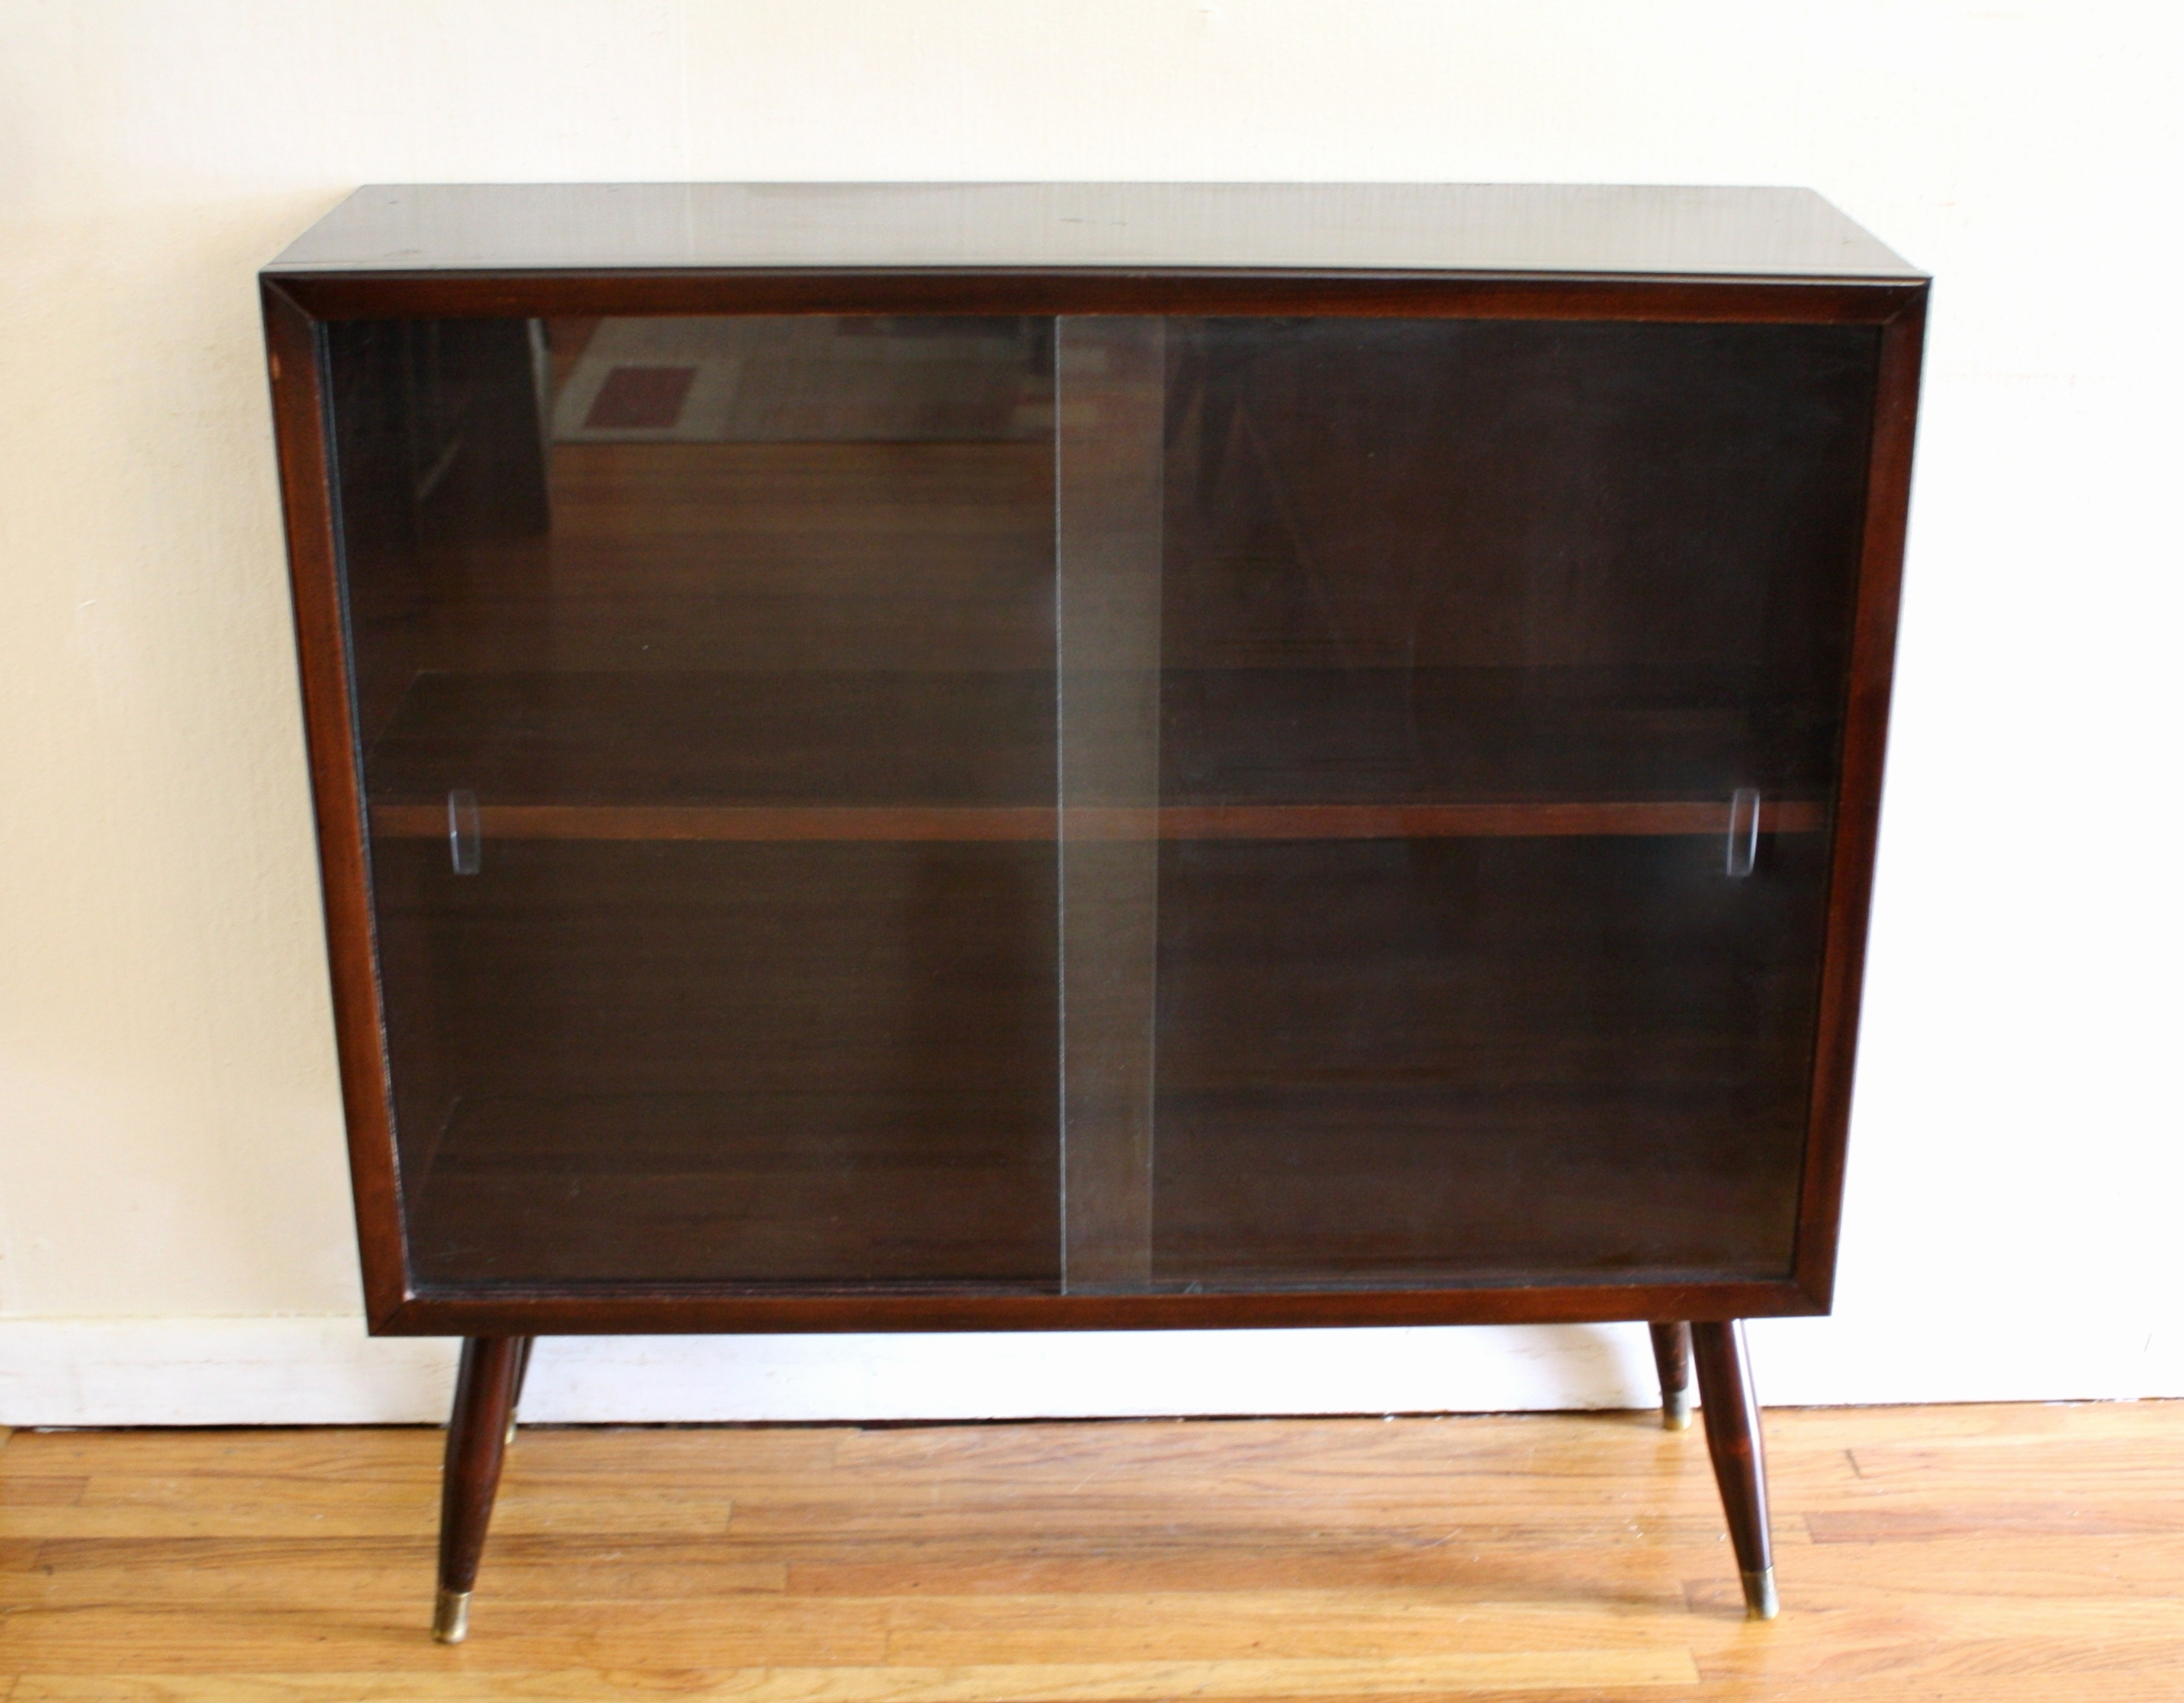 Widely Used Mid Century Bookcases Within Modern Wood Bookcase Fancy Mid Century Modern Bookshelves And (View 15 of 15)